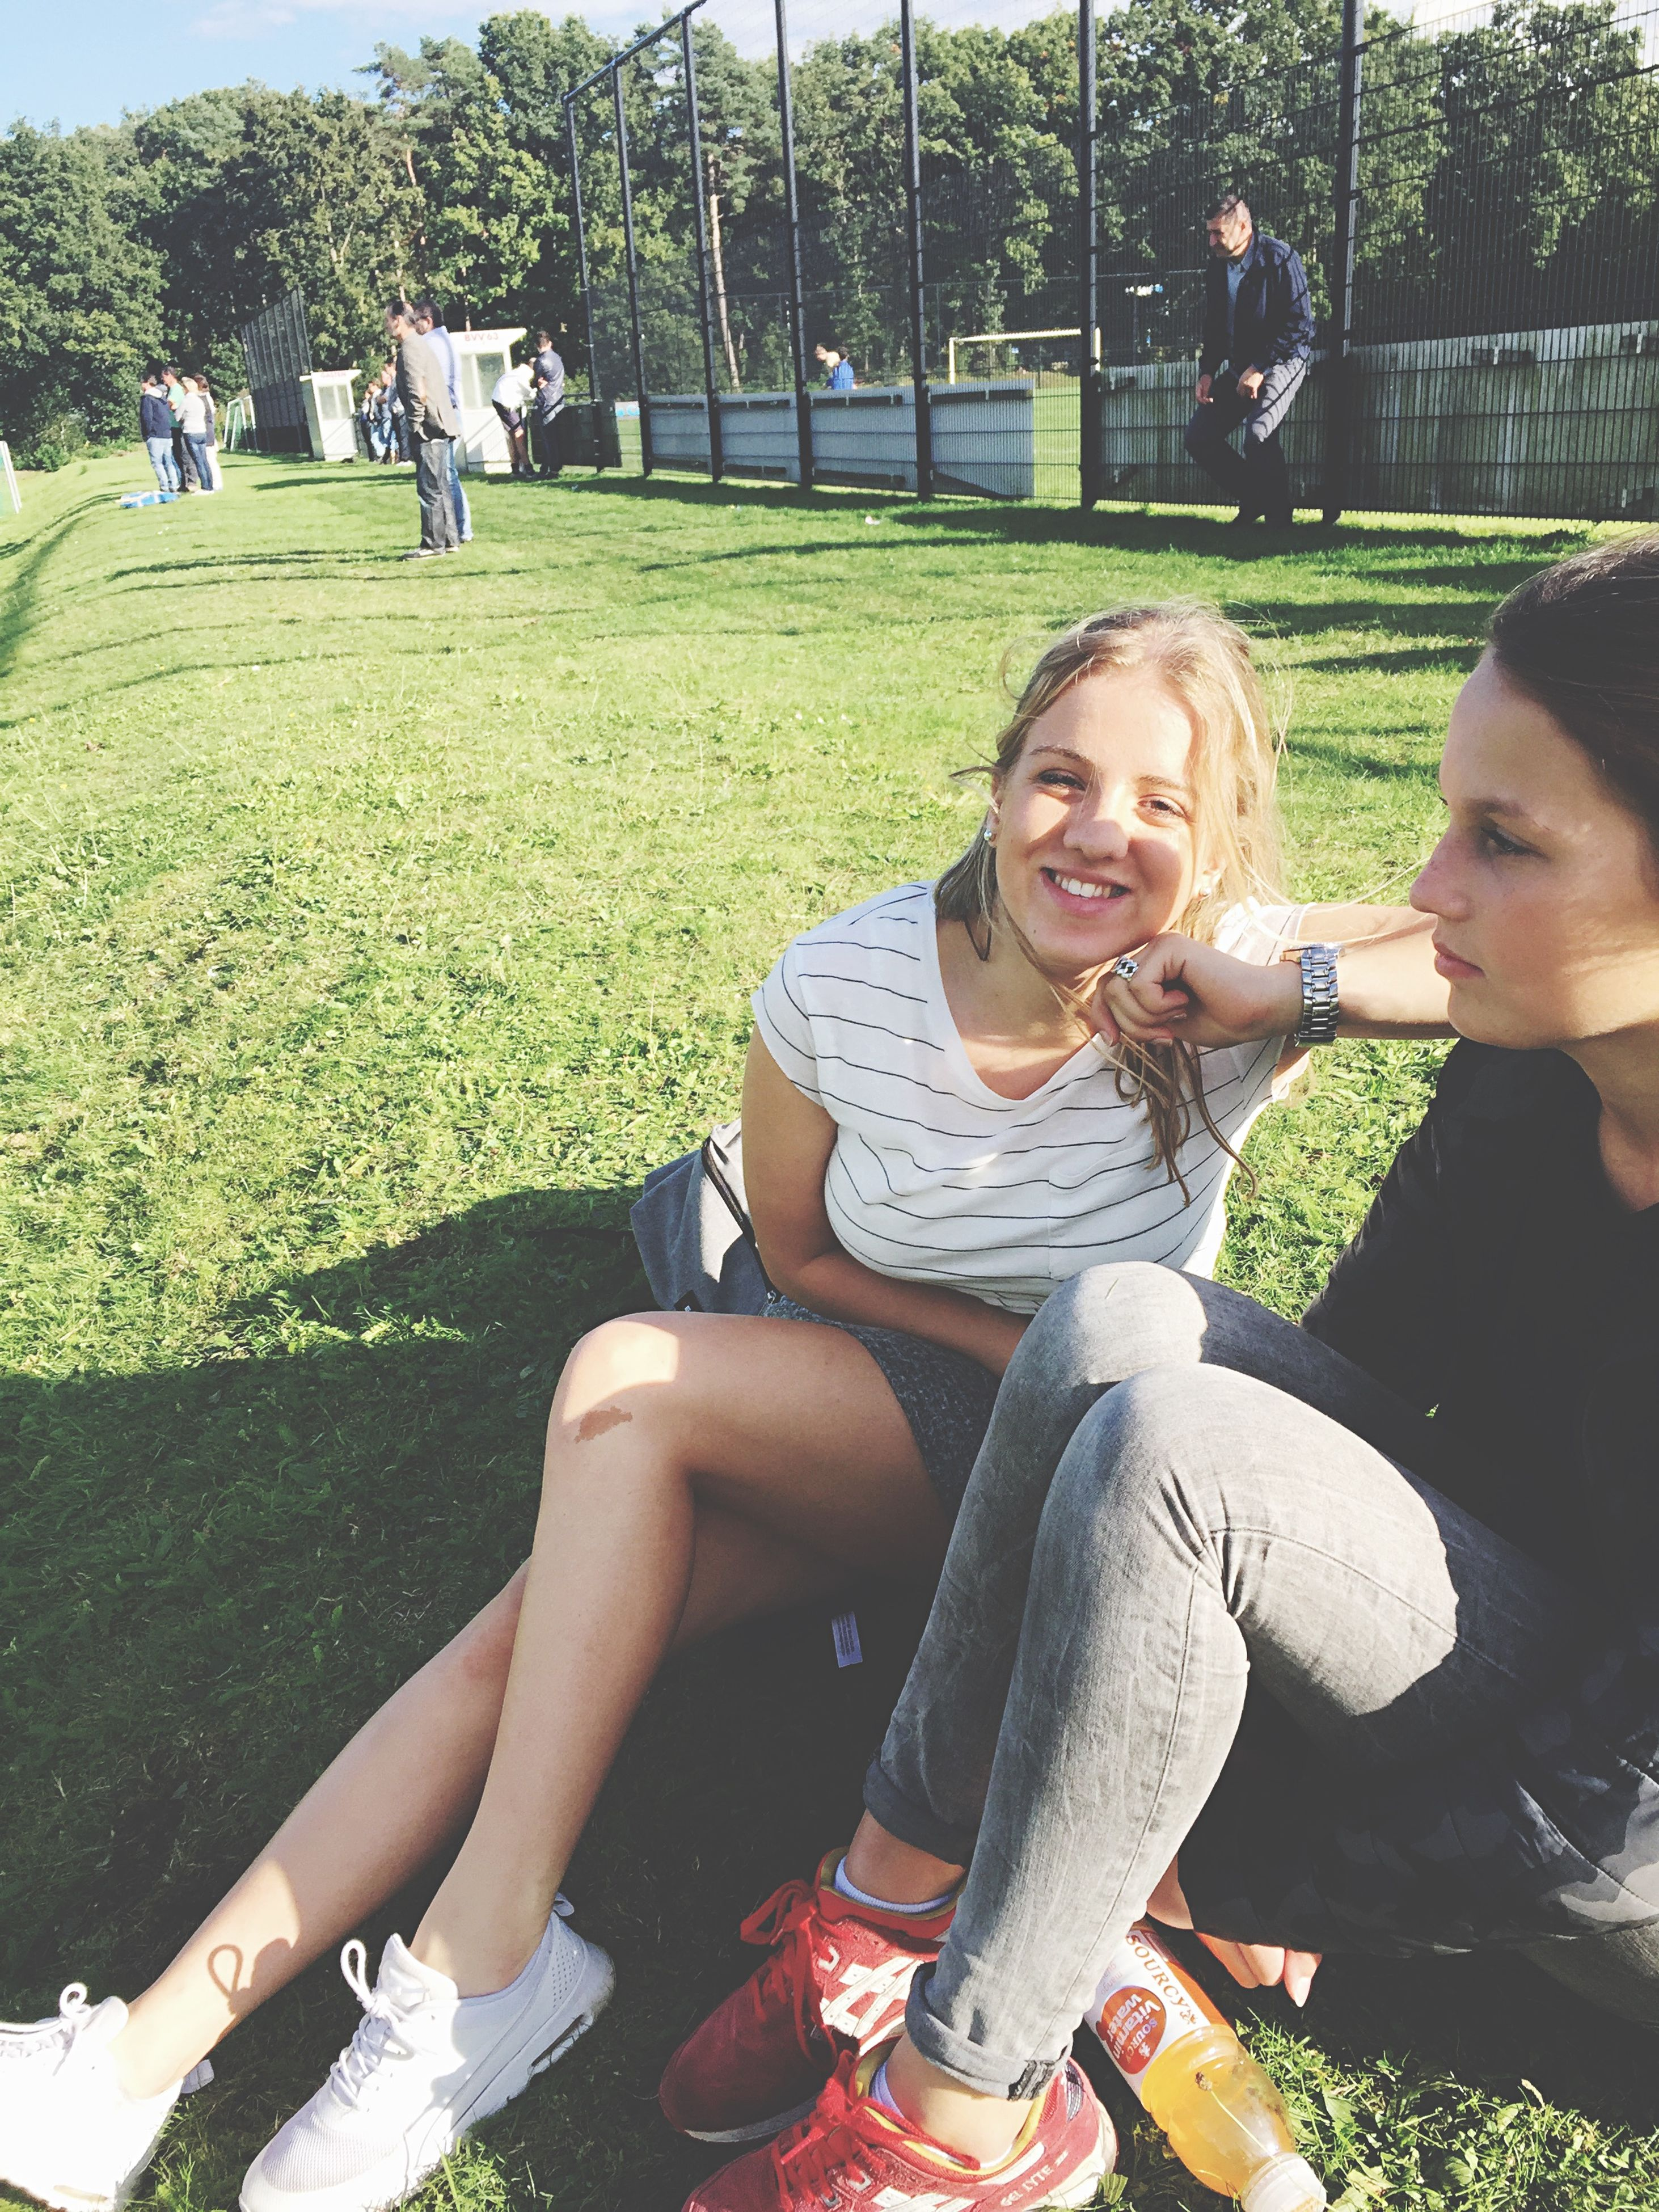 lifestyles, leisure activity, person, casual clothing, sitting, togetherness, smiling, bonding, happiness, young adult, childhood, enjoyment, park - man made space, love, portrait, young women, looking at camera